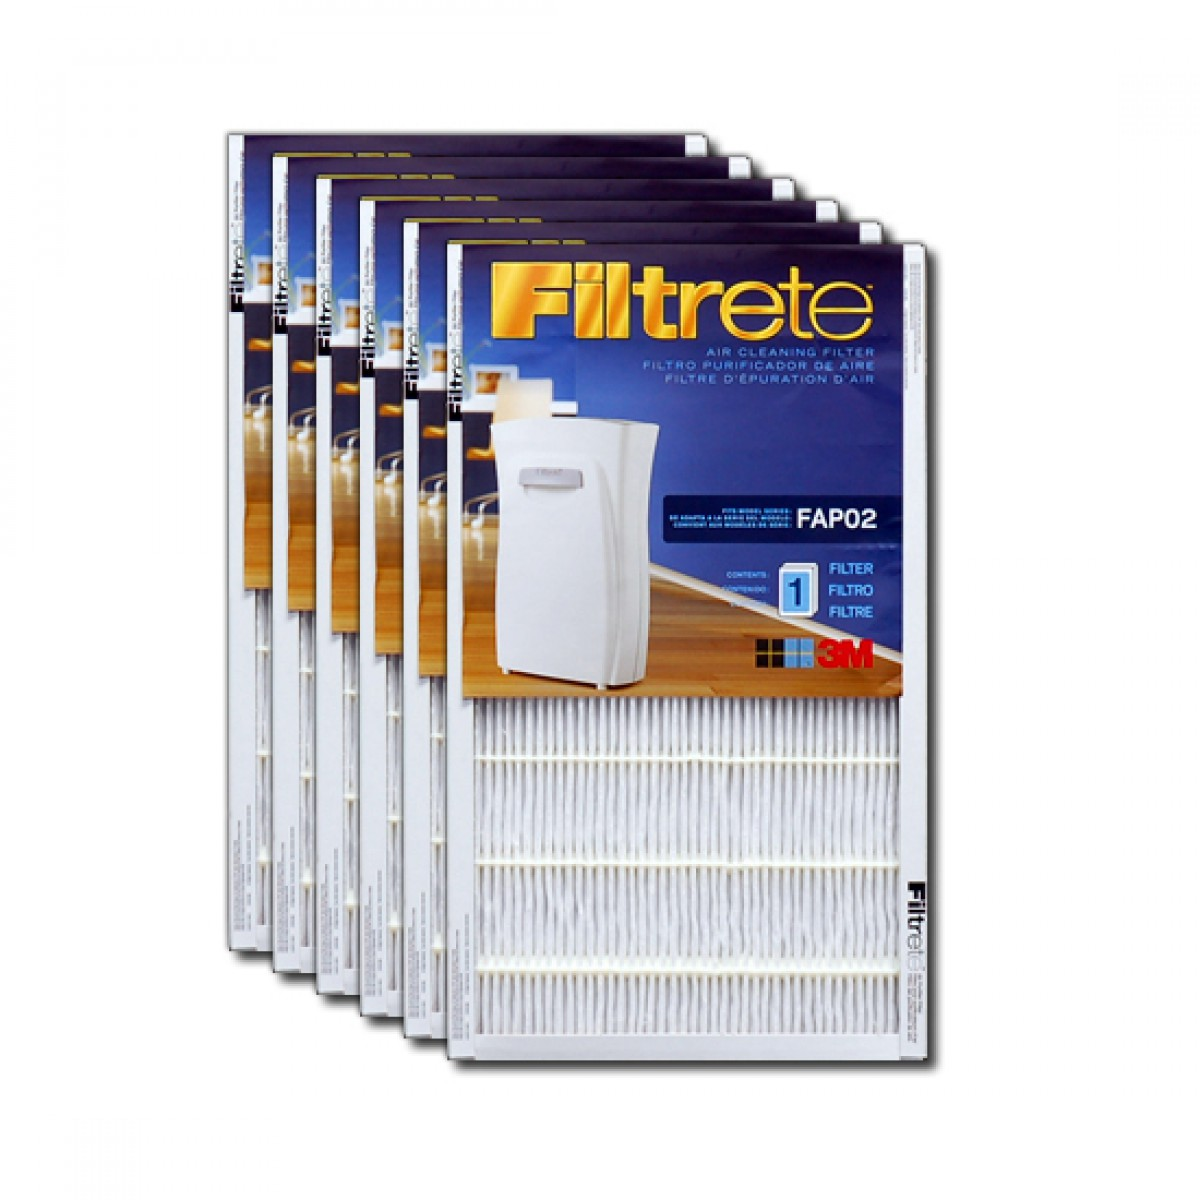 The Filtrete® Micro Allergen Reduction Filter carries a 3M Microparticle Performance Rating (MPR) of - roughly equivalent to a MERV 11 rating.